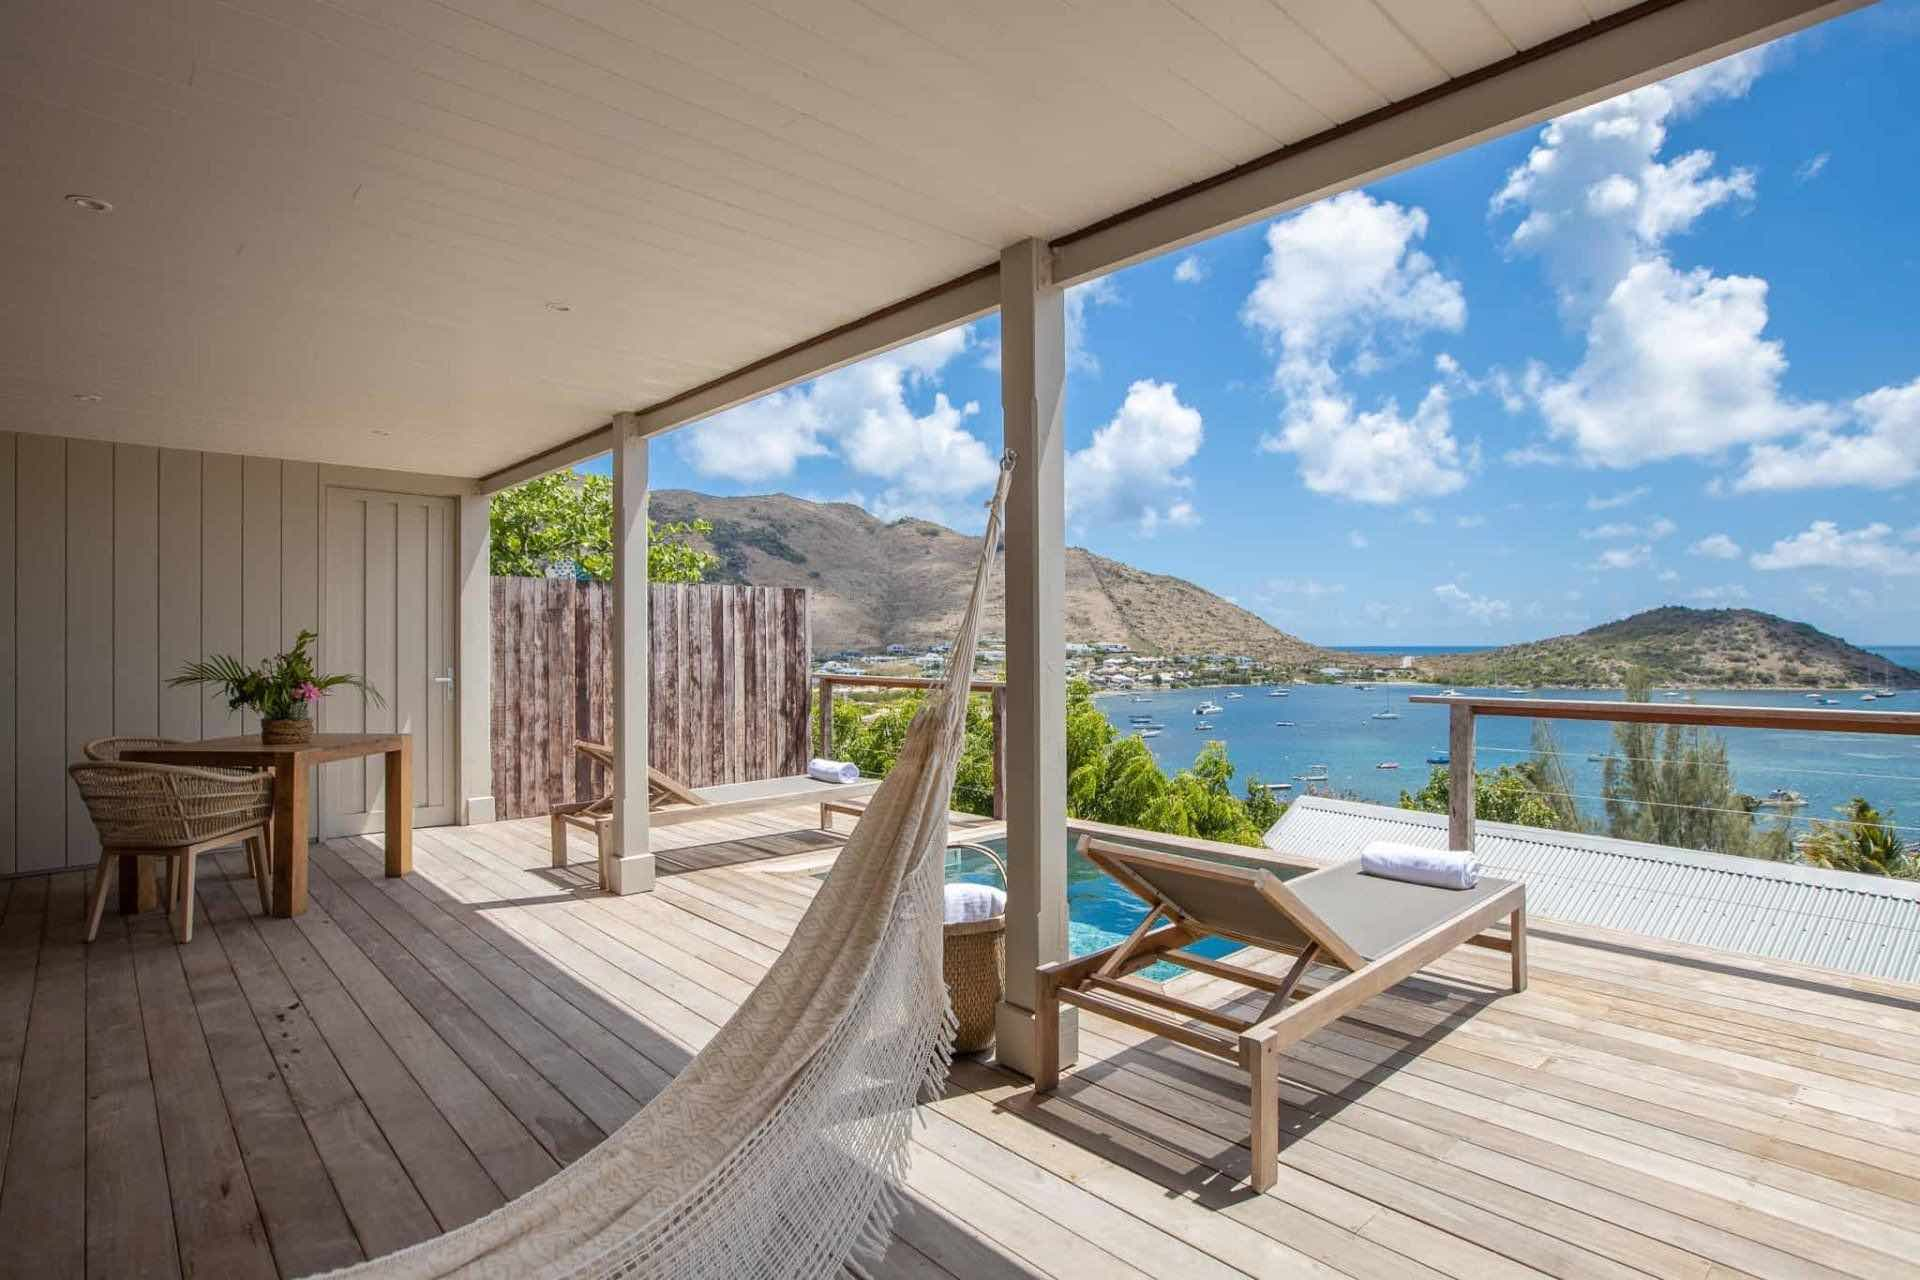 le-karibuni-boutique-hotels in St MArtin -suite-rouge balcony and hot tub